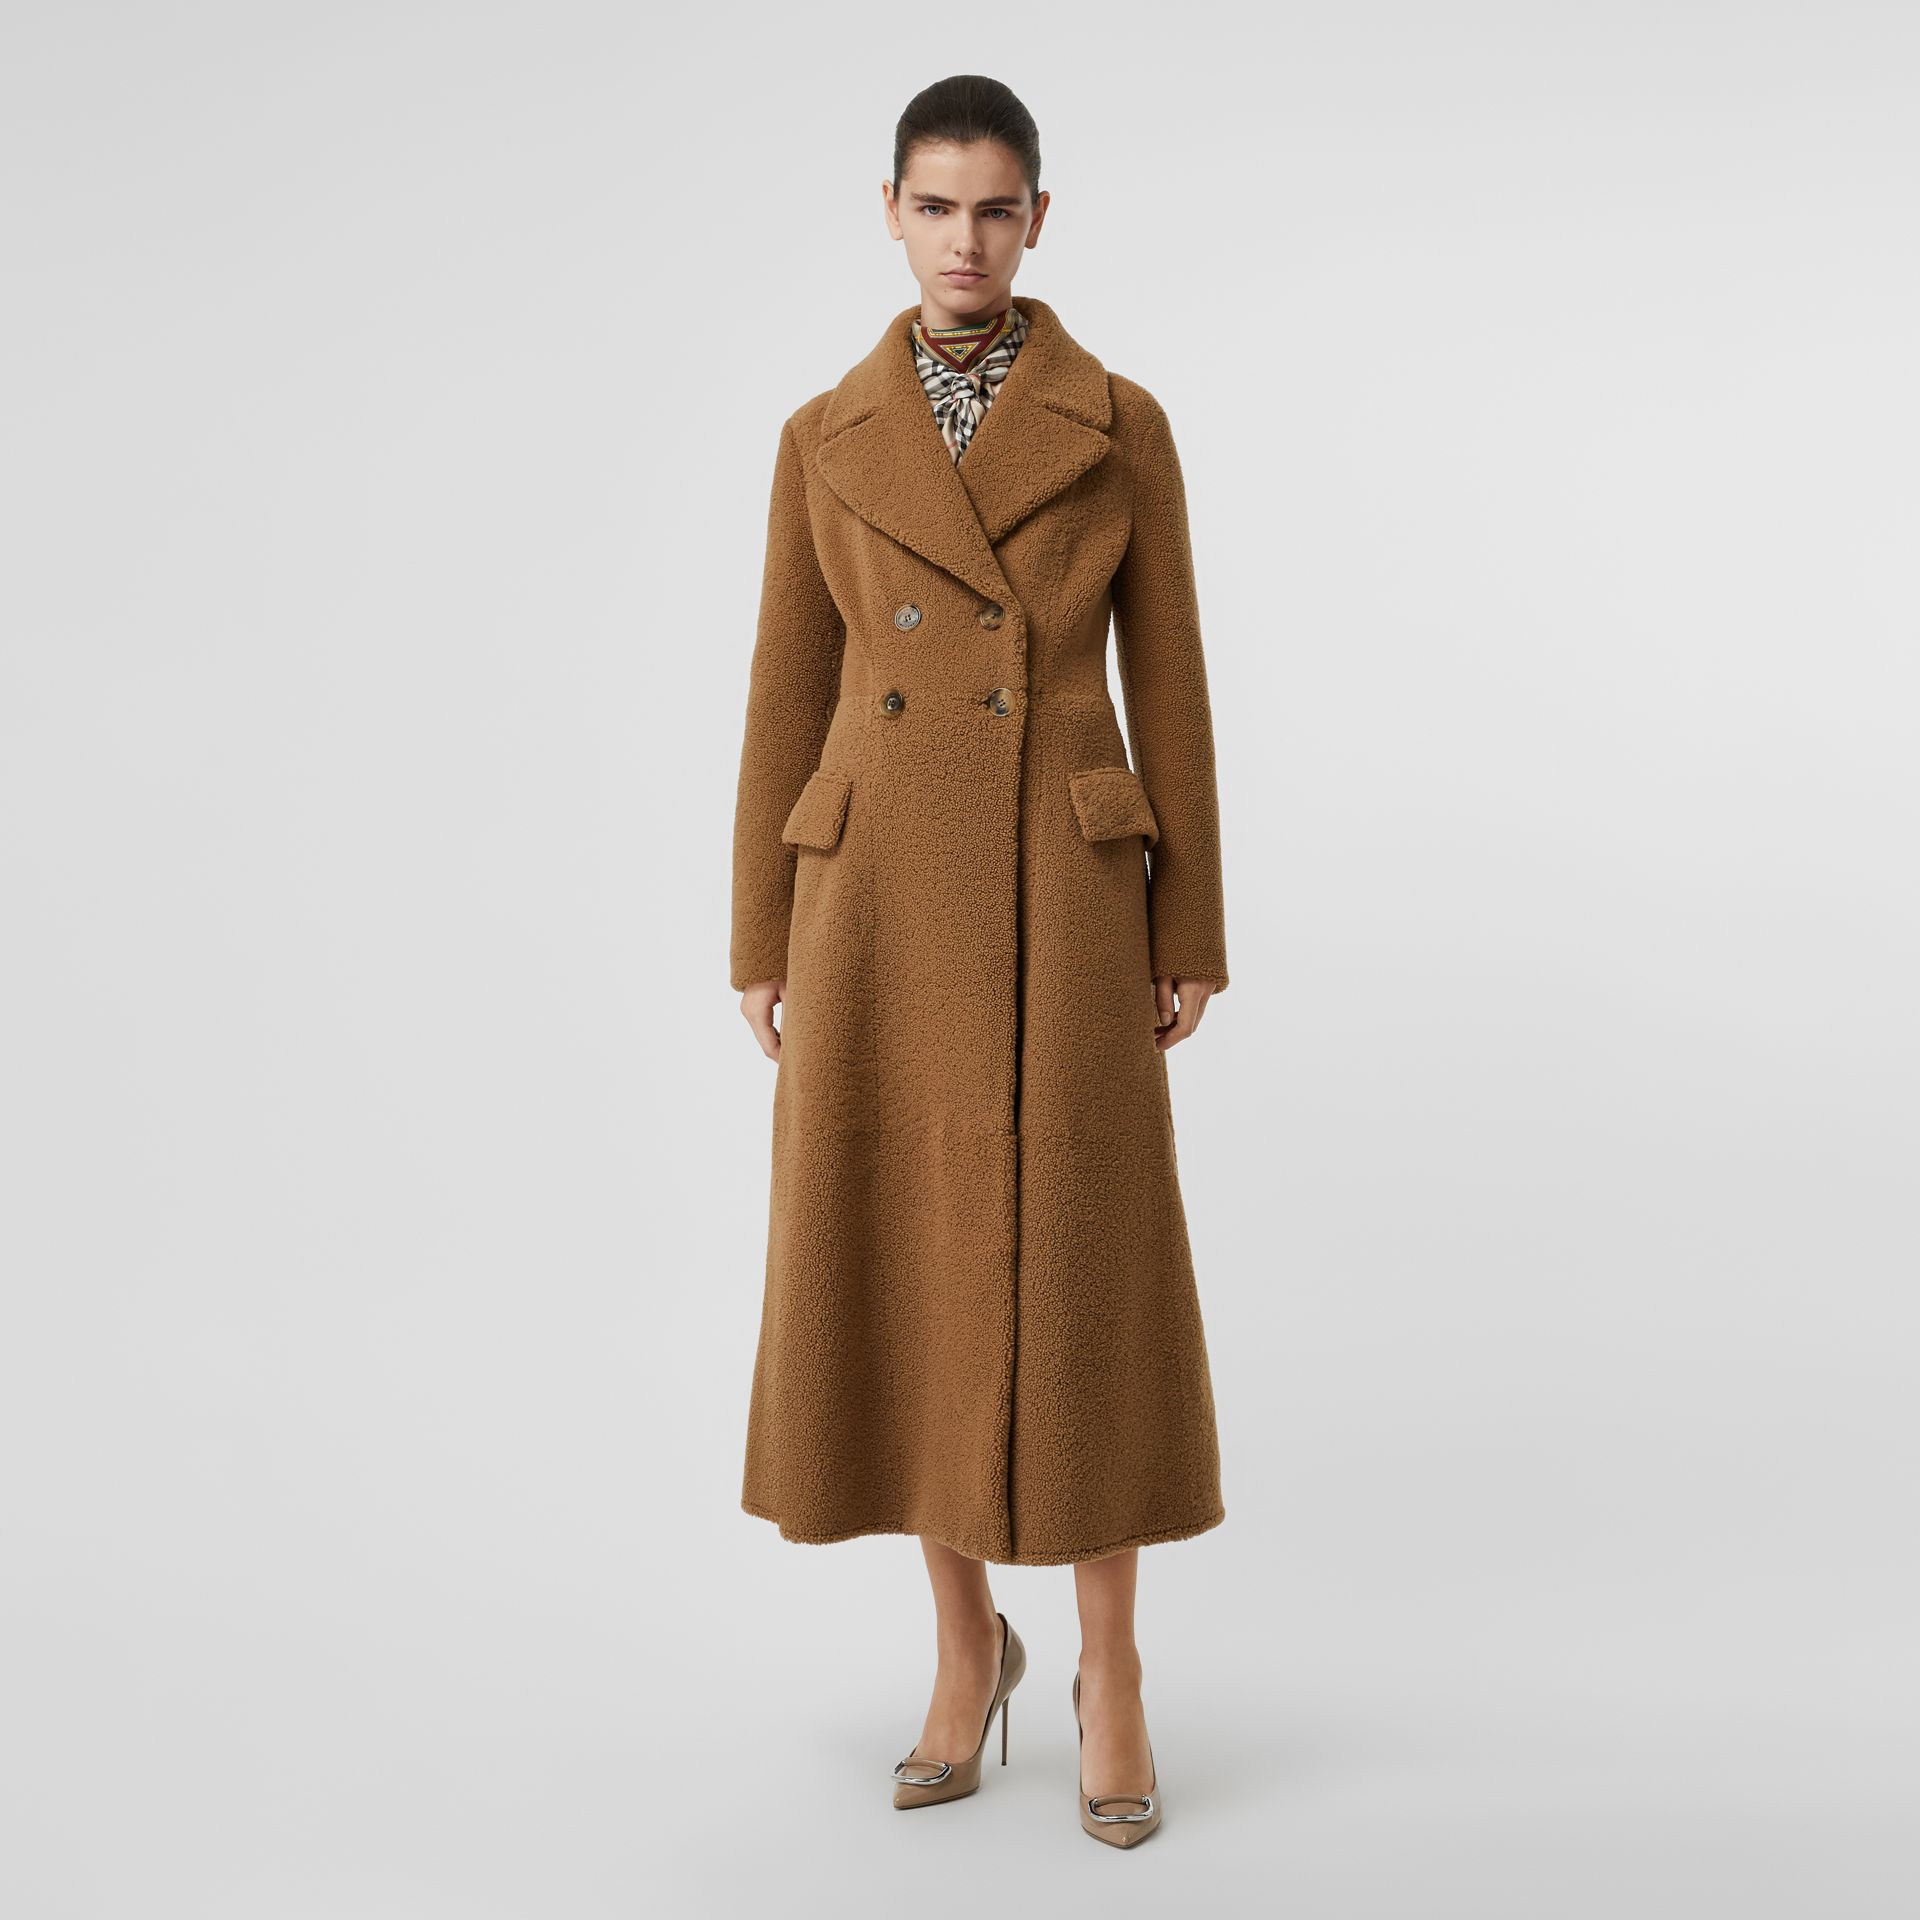 Shearling Tailored Coat in Caramel - Women | Burberry - gallery image 5